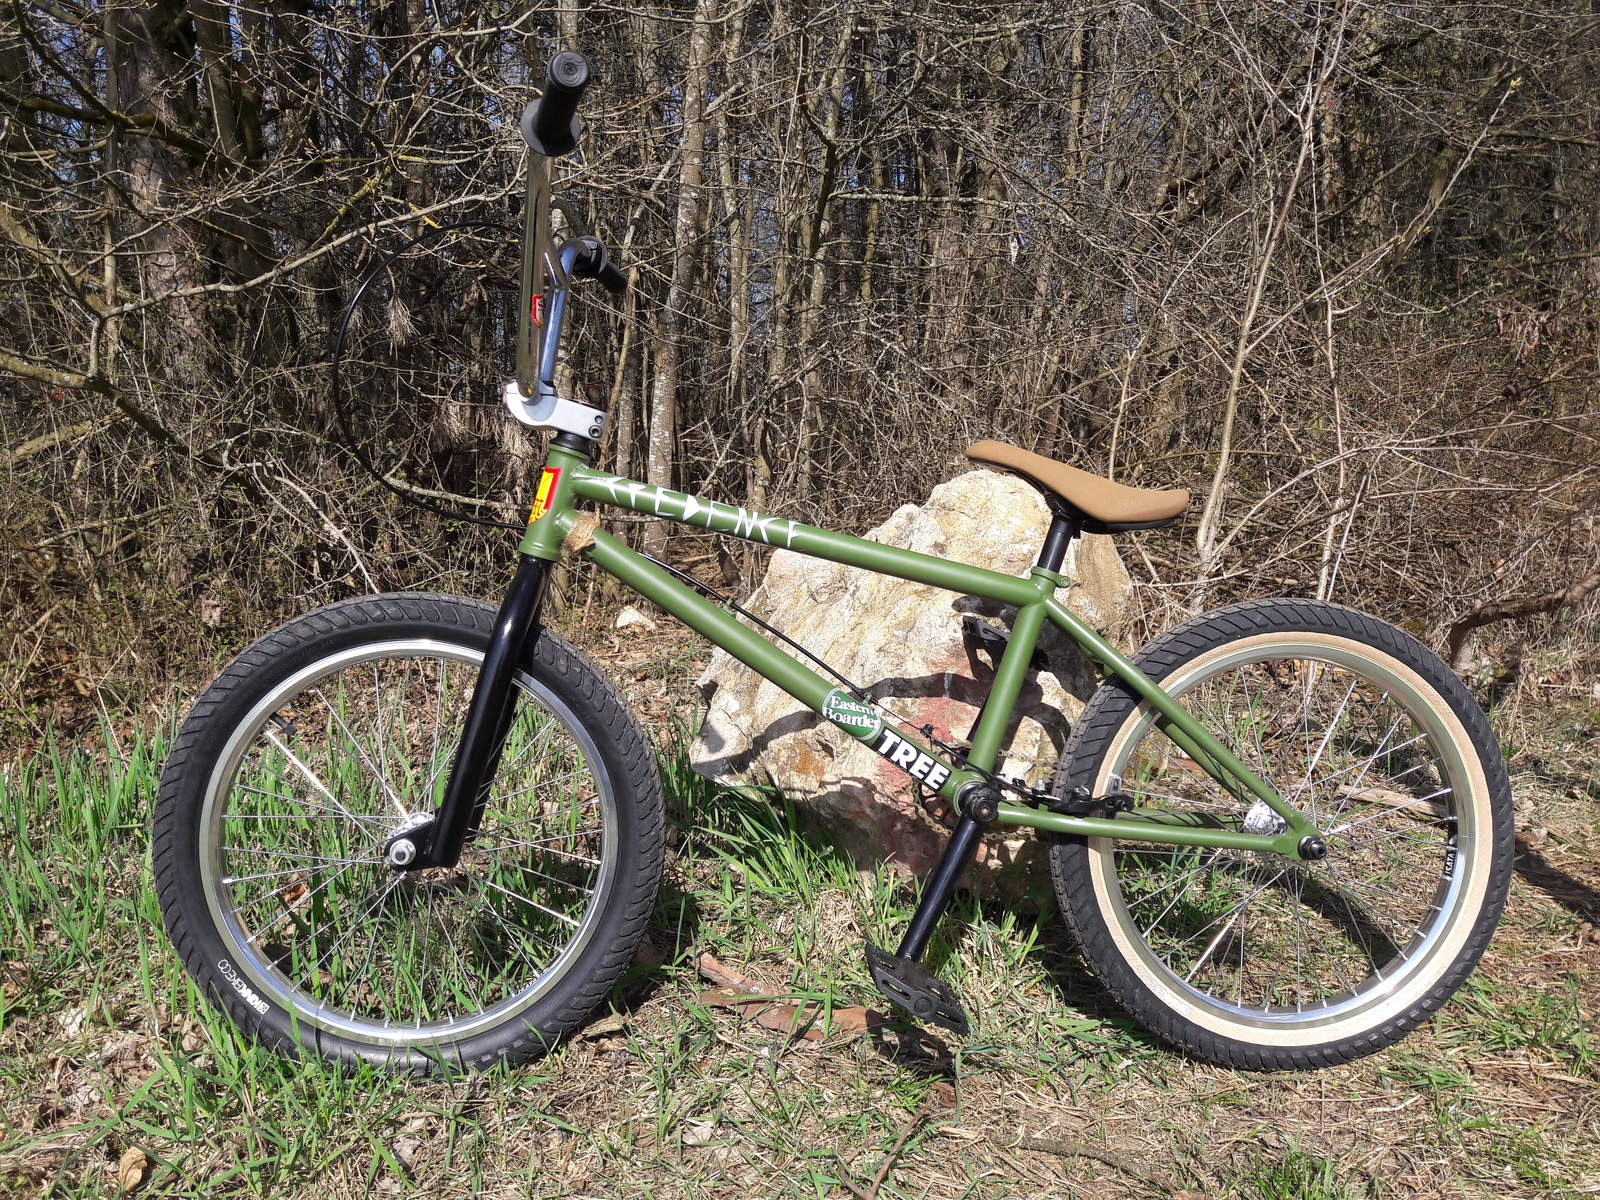 http://uploads.bmxmuseum.com/user-images/227357/20180408_1057215ace542c2a.jpg